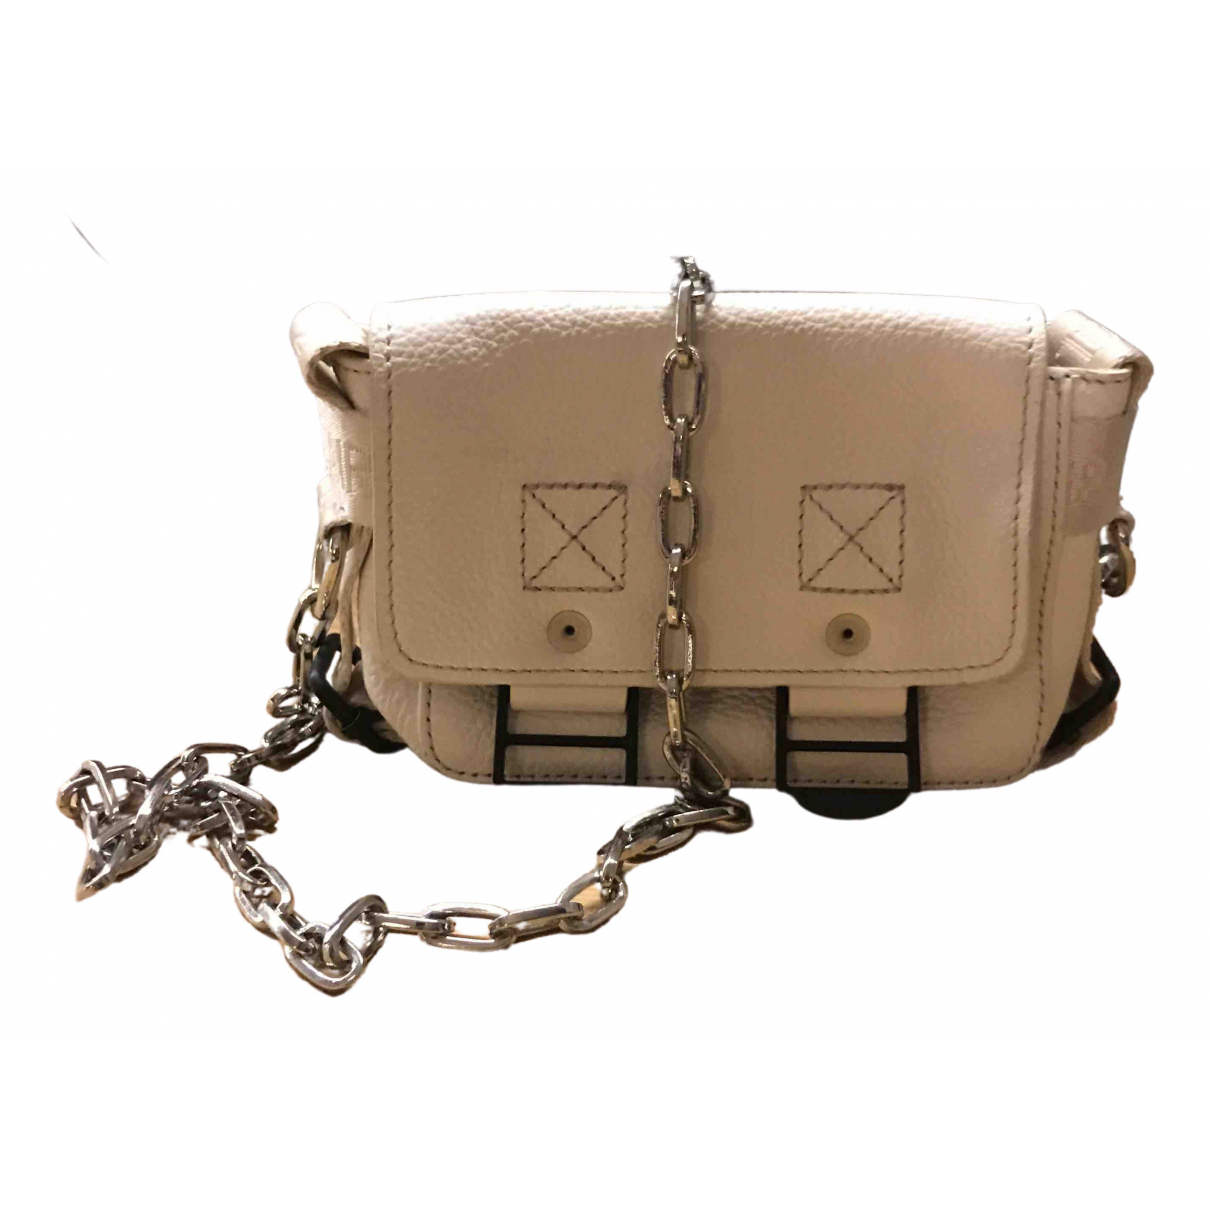 Zadig & Voltaire \N White Leather Clutch bag for Women \N